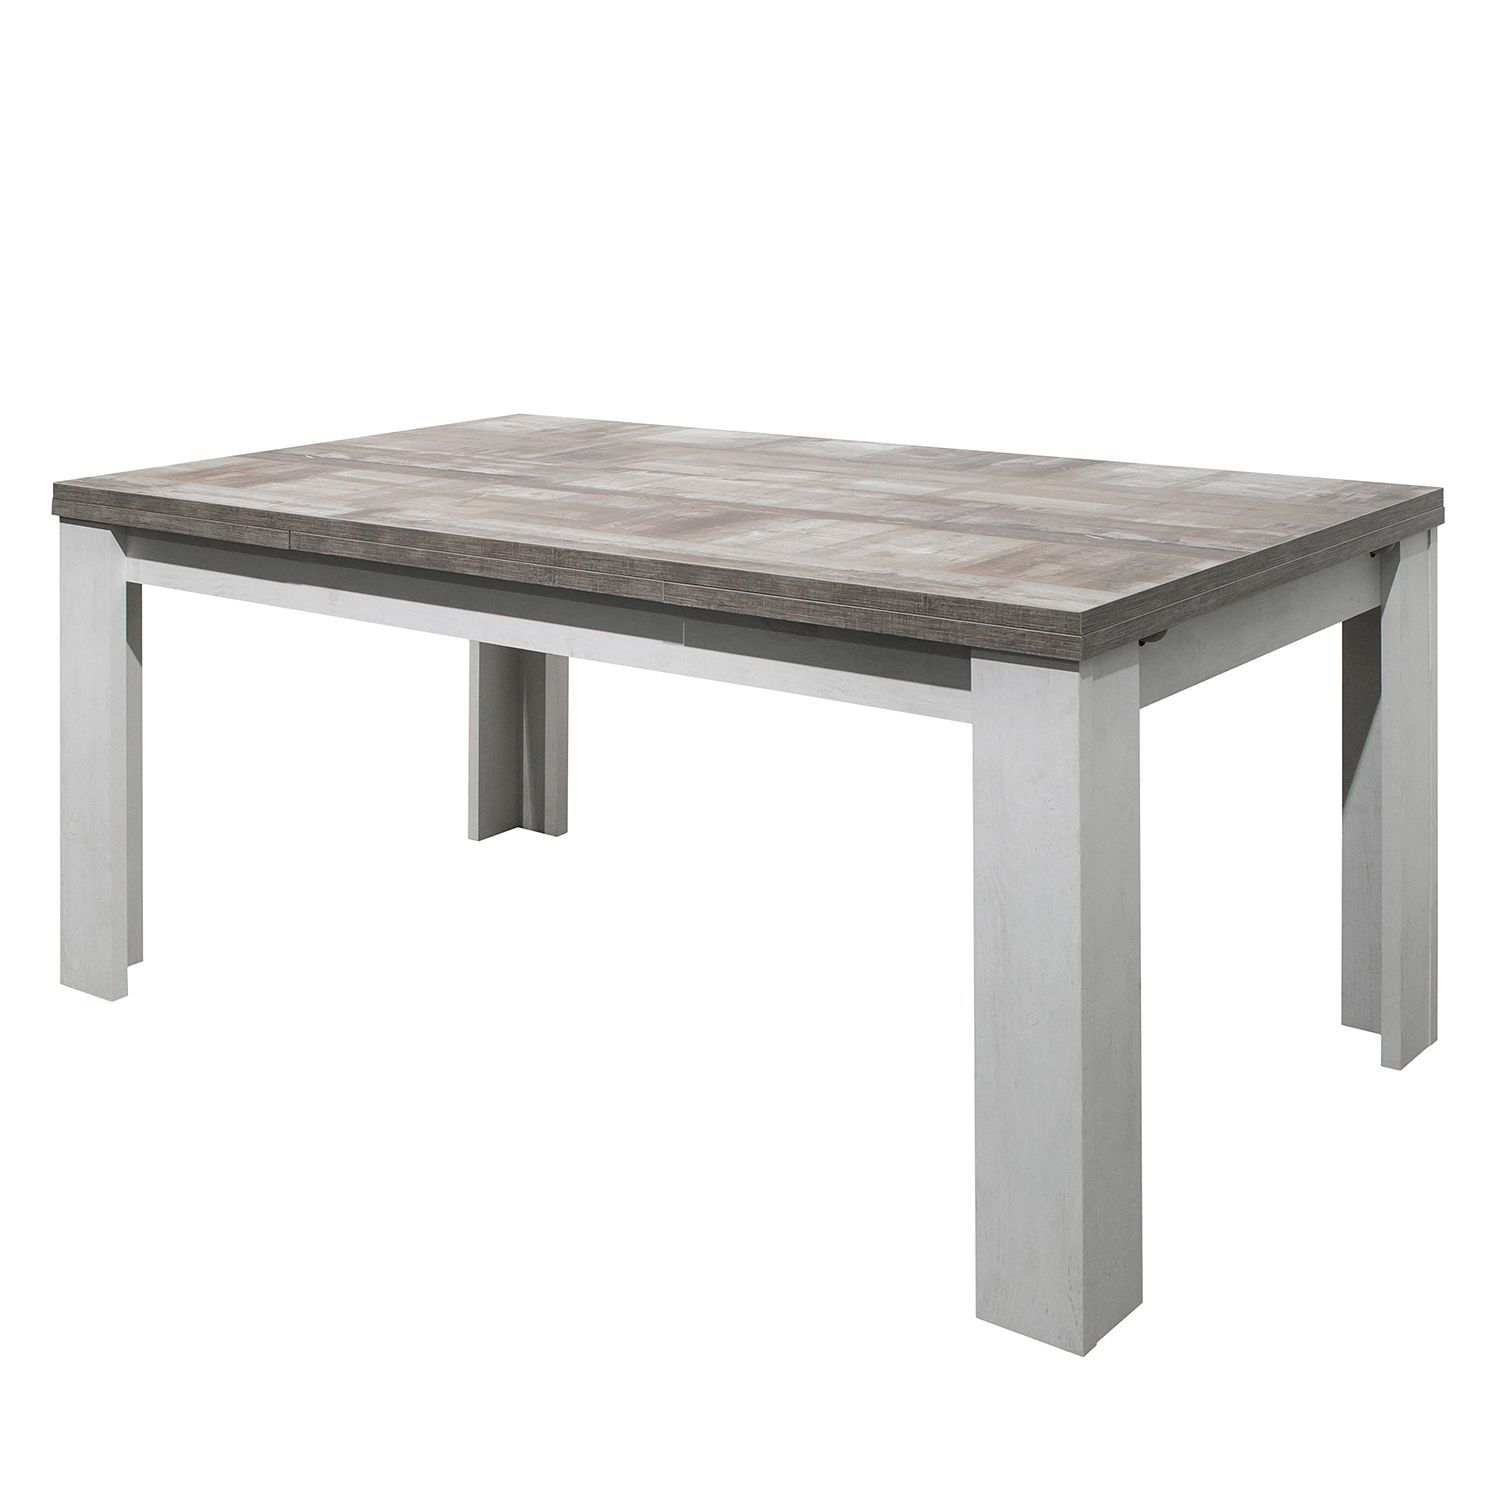 Table salle manger carr e pied central table de sejour - Table de salle a manger carree avec pied central ...